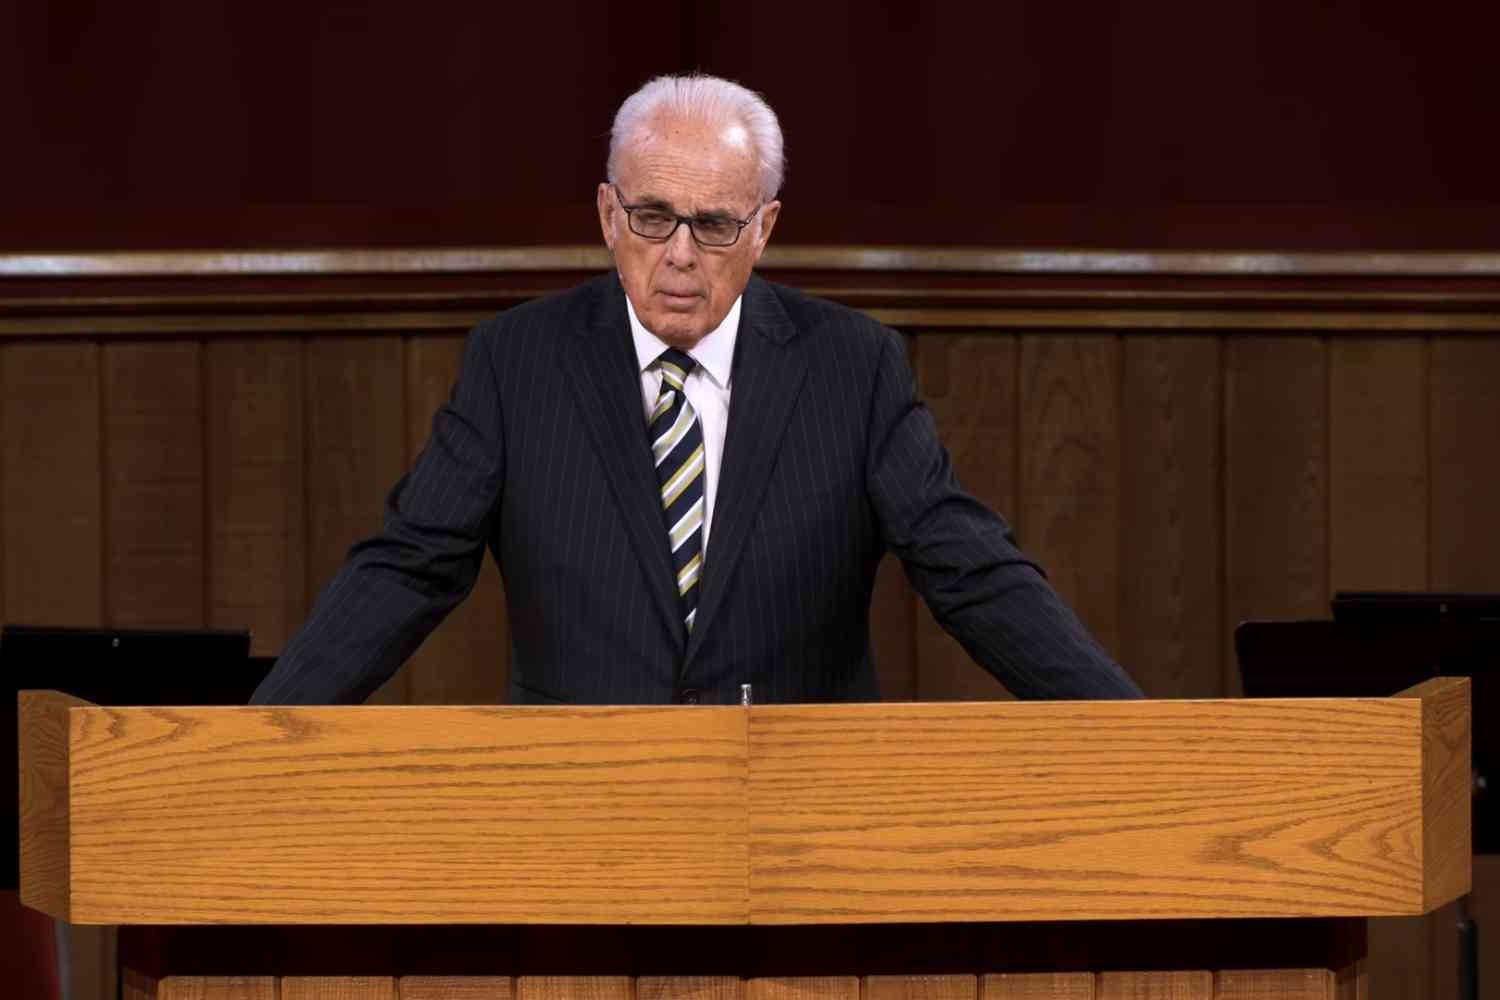 John MacArthur's Grace Community Church announces it will not obey ...